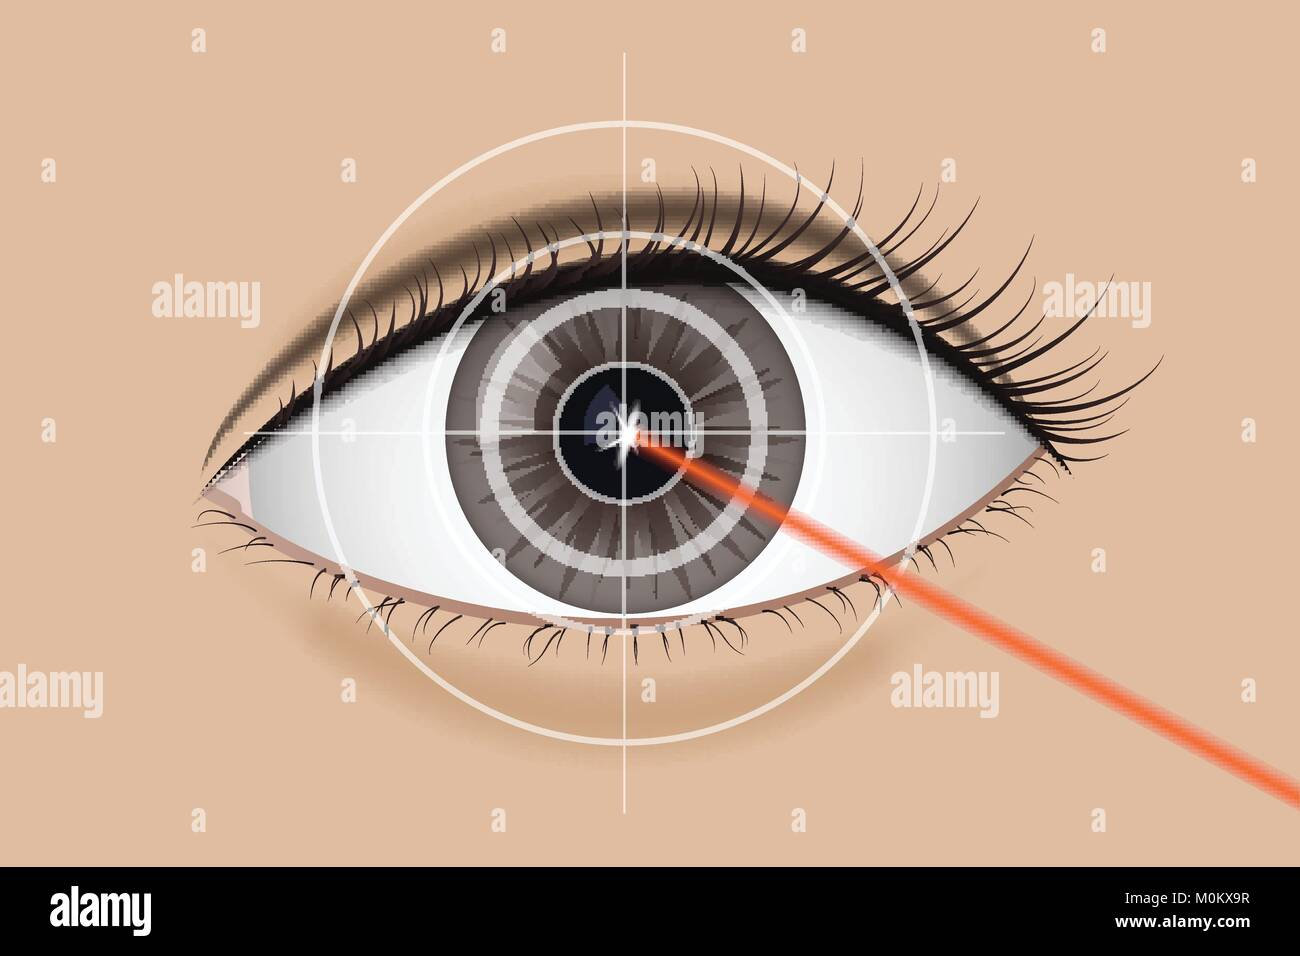 Of laser vision correction. - Stock Image